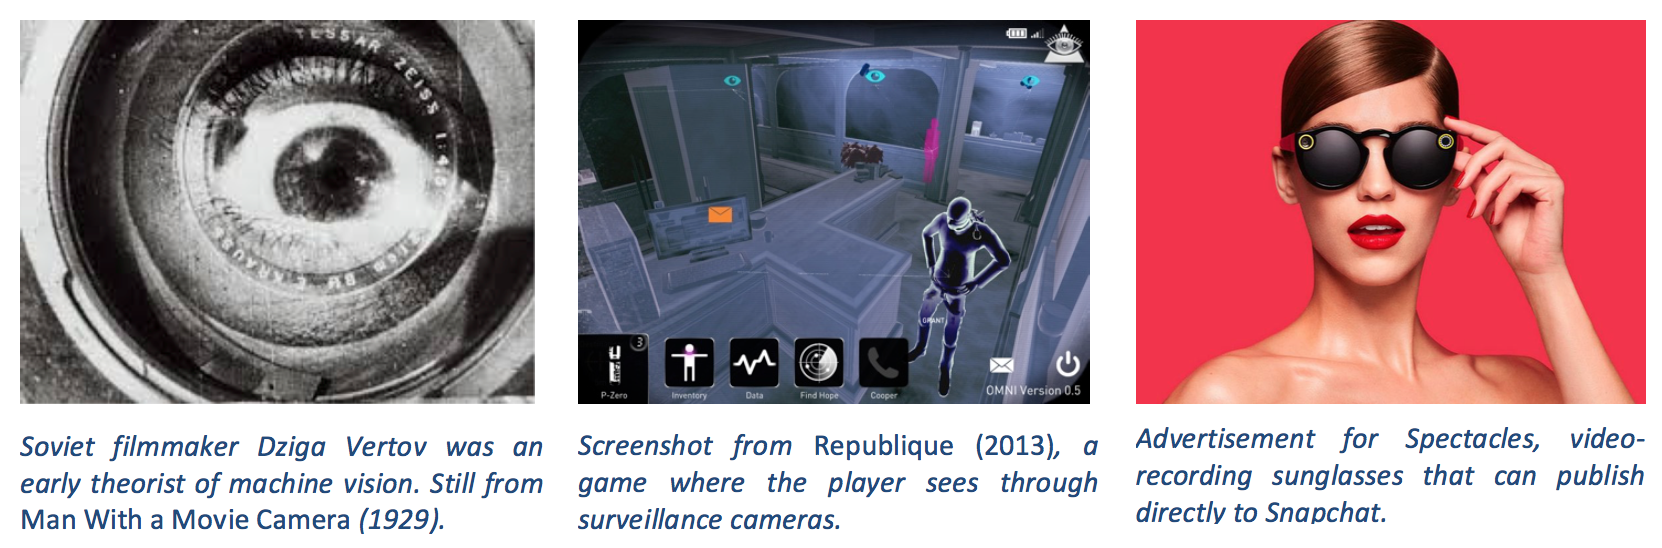 Three images showing examples of machine vision: Vertov's kinoeye, a game that simulates surveillance, Spectacles for Snapchat.